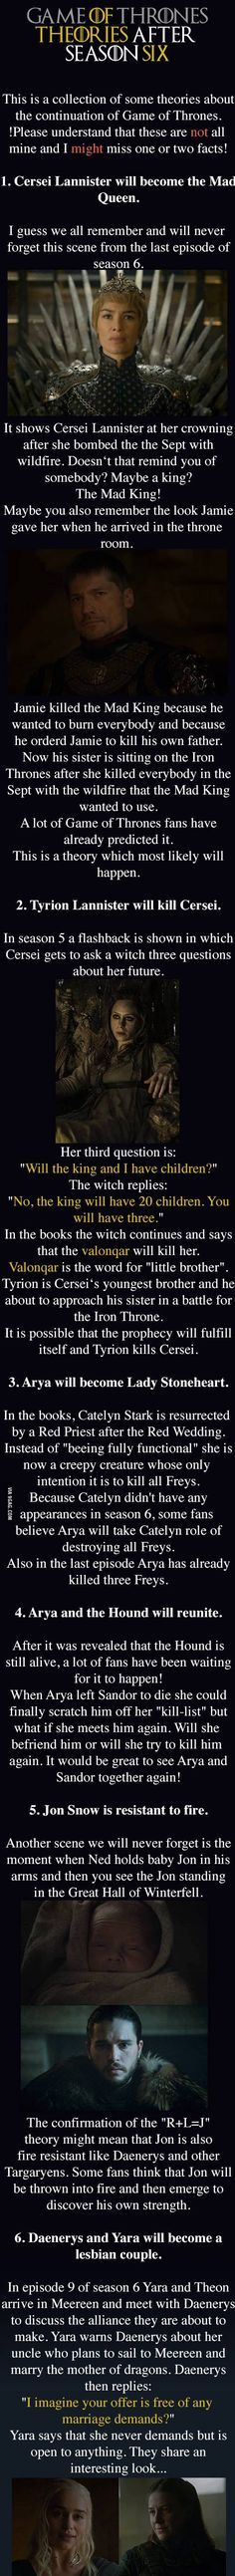 game of thrones theories that could be true